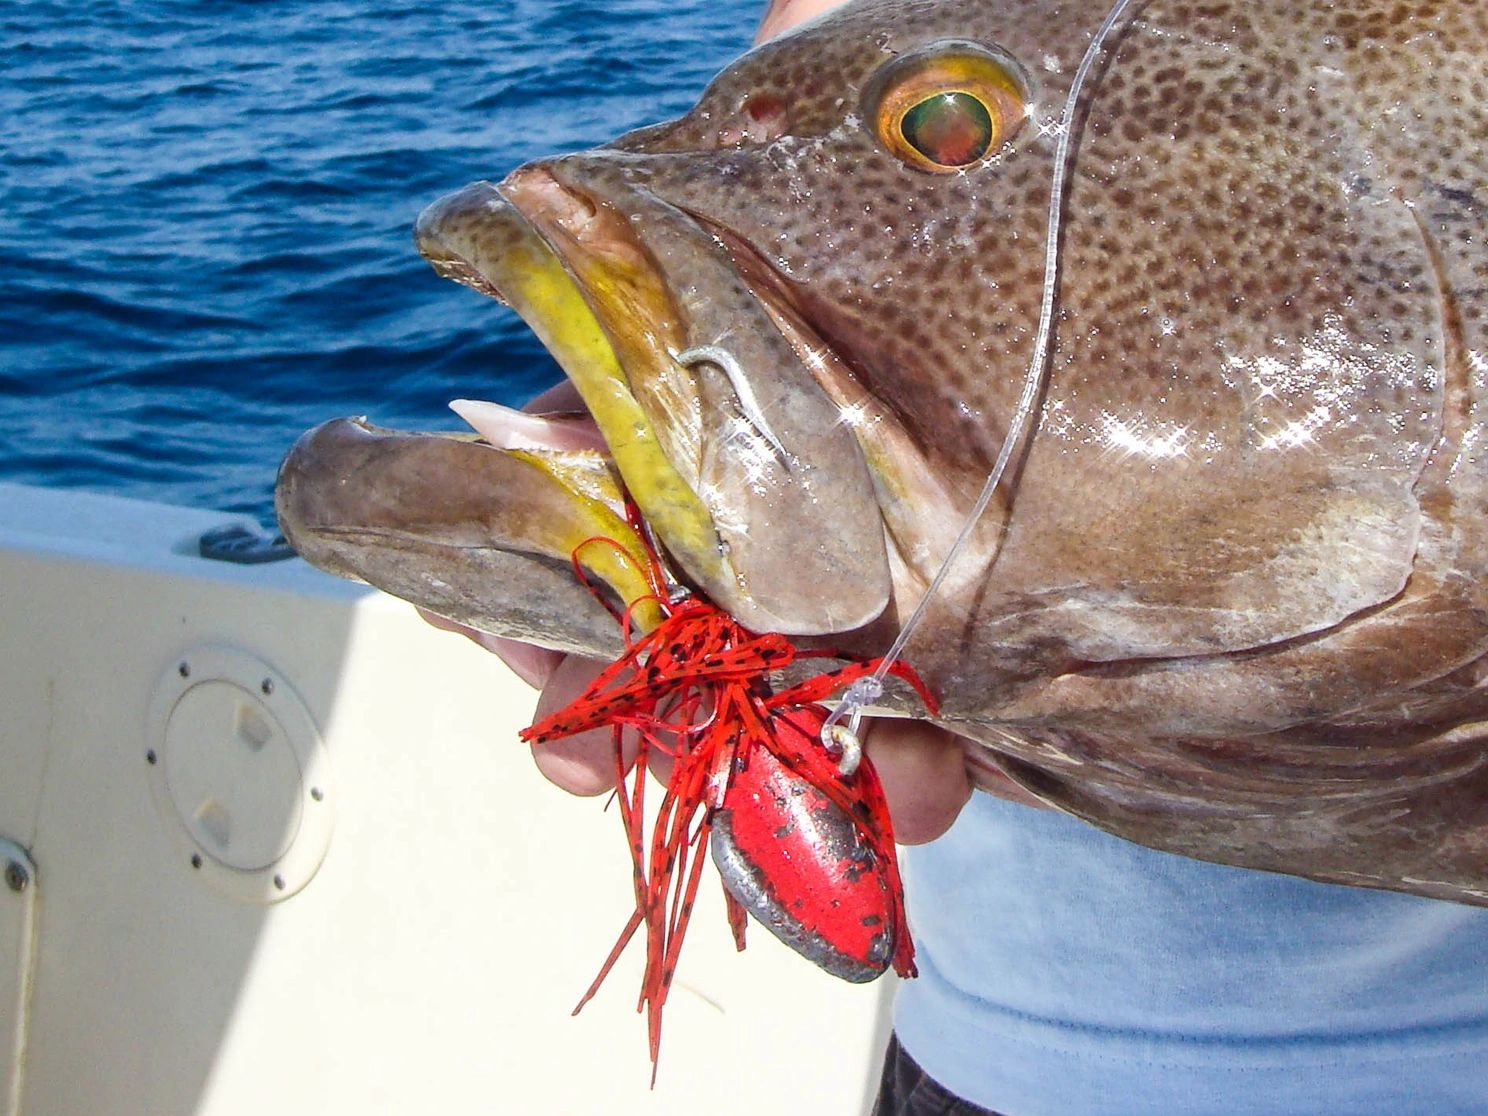 Coastal anglers order Crab Decoy Jigs for striped bass, drum, snook, grouper, west coast bottom fish